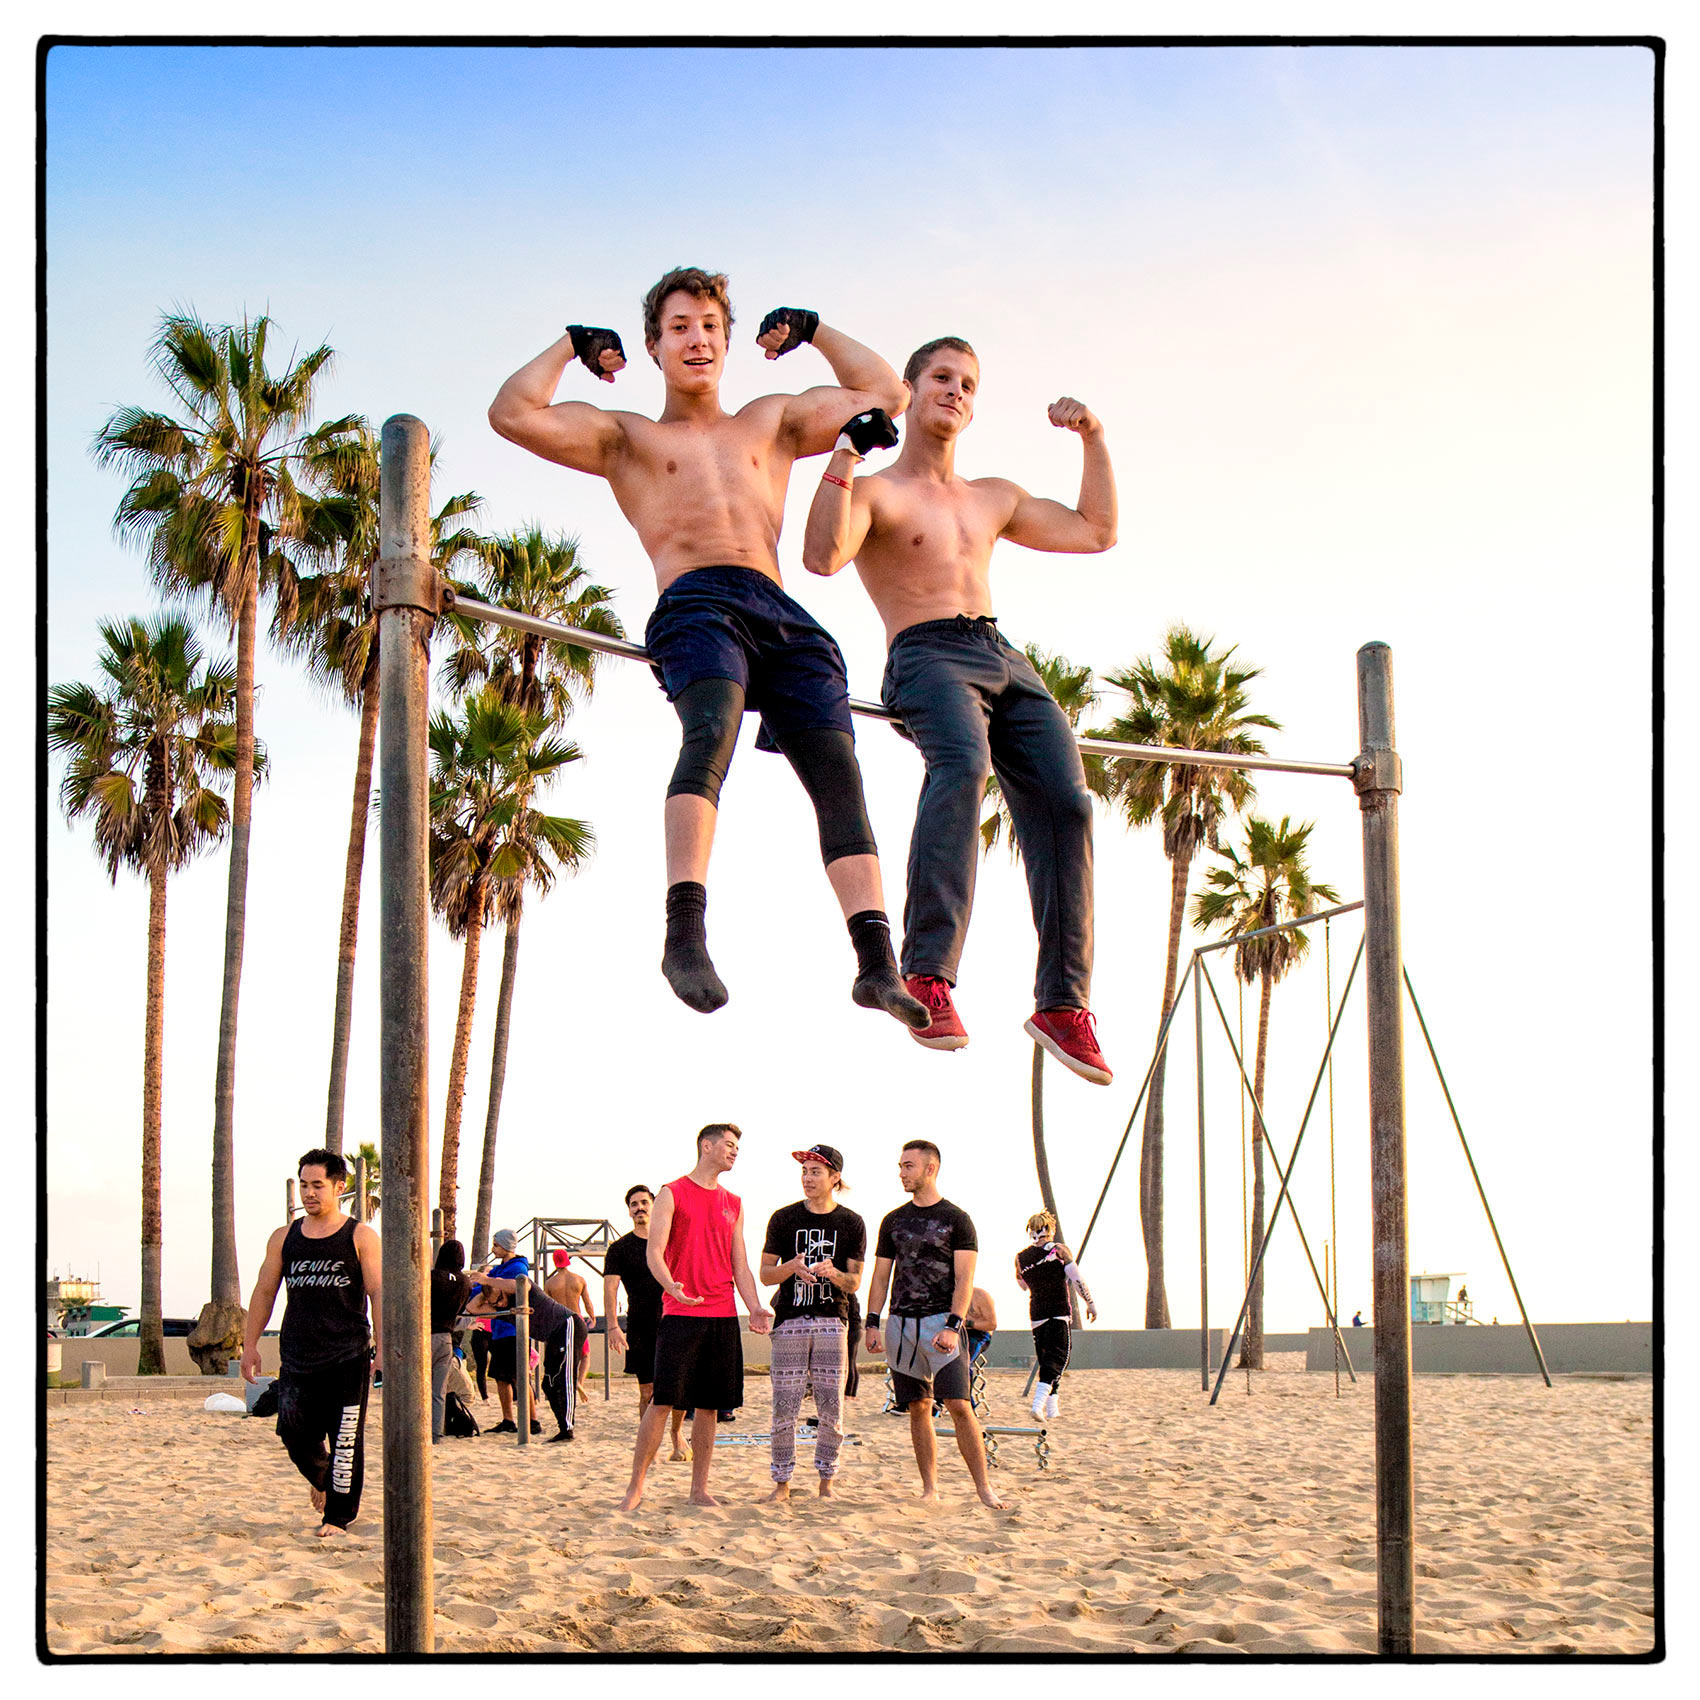 two-teenage-boys-show-off-their-muscles-while-sitting-on-a-parrallel-bar-in-venice-beach